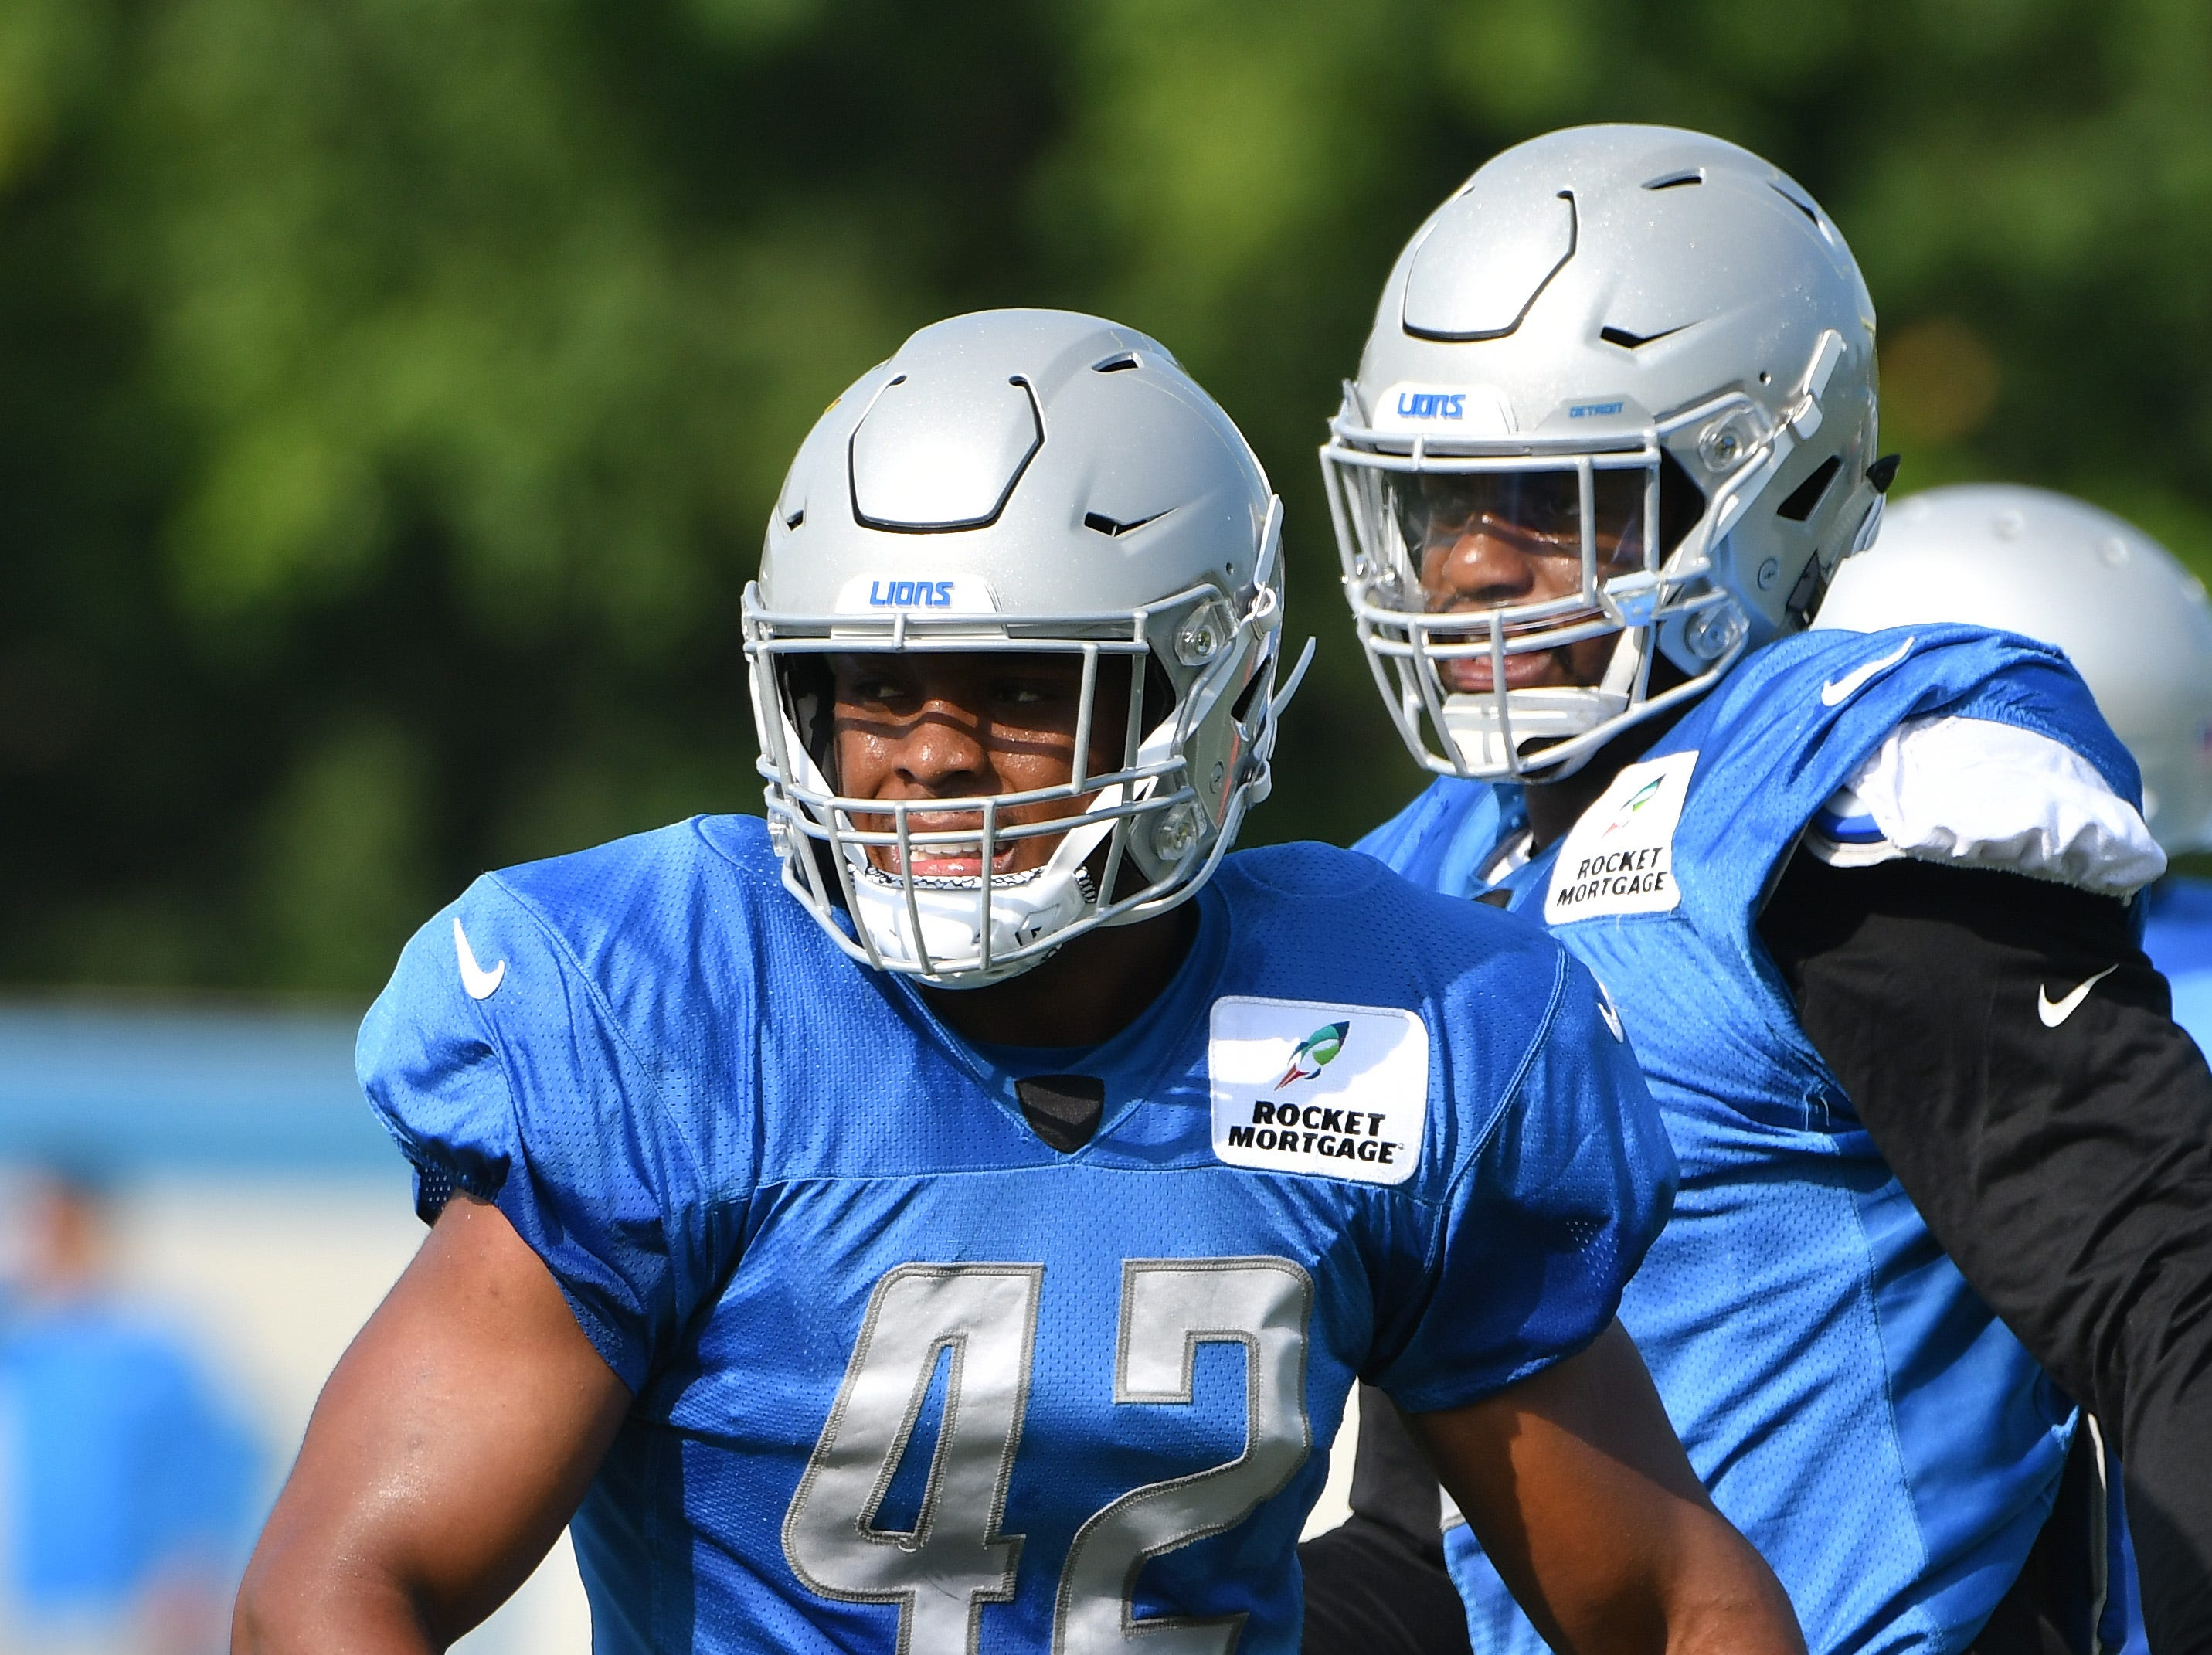 LB Devon Kennard: Kennard, the team's top free-agent signing this offseason, has exceeded expectations. Primarily used as an edge defender, he's consistently shown good instincts and is a relentless pass rusher. That's helped him net 5.0 sacks. His ability to set the edge is regularly tested by opposing offenses with purpose, but he's otherwise been a strong add to the roster.  Grade: B+